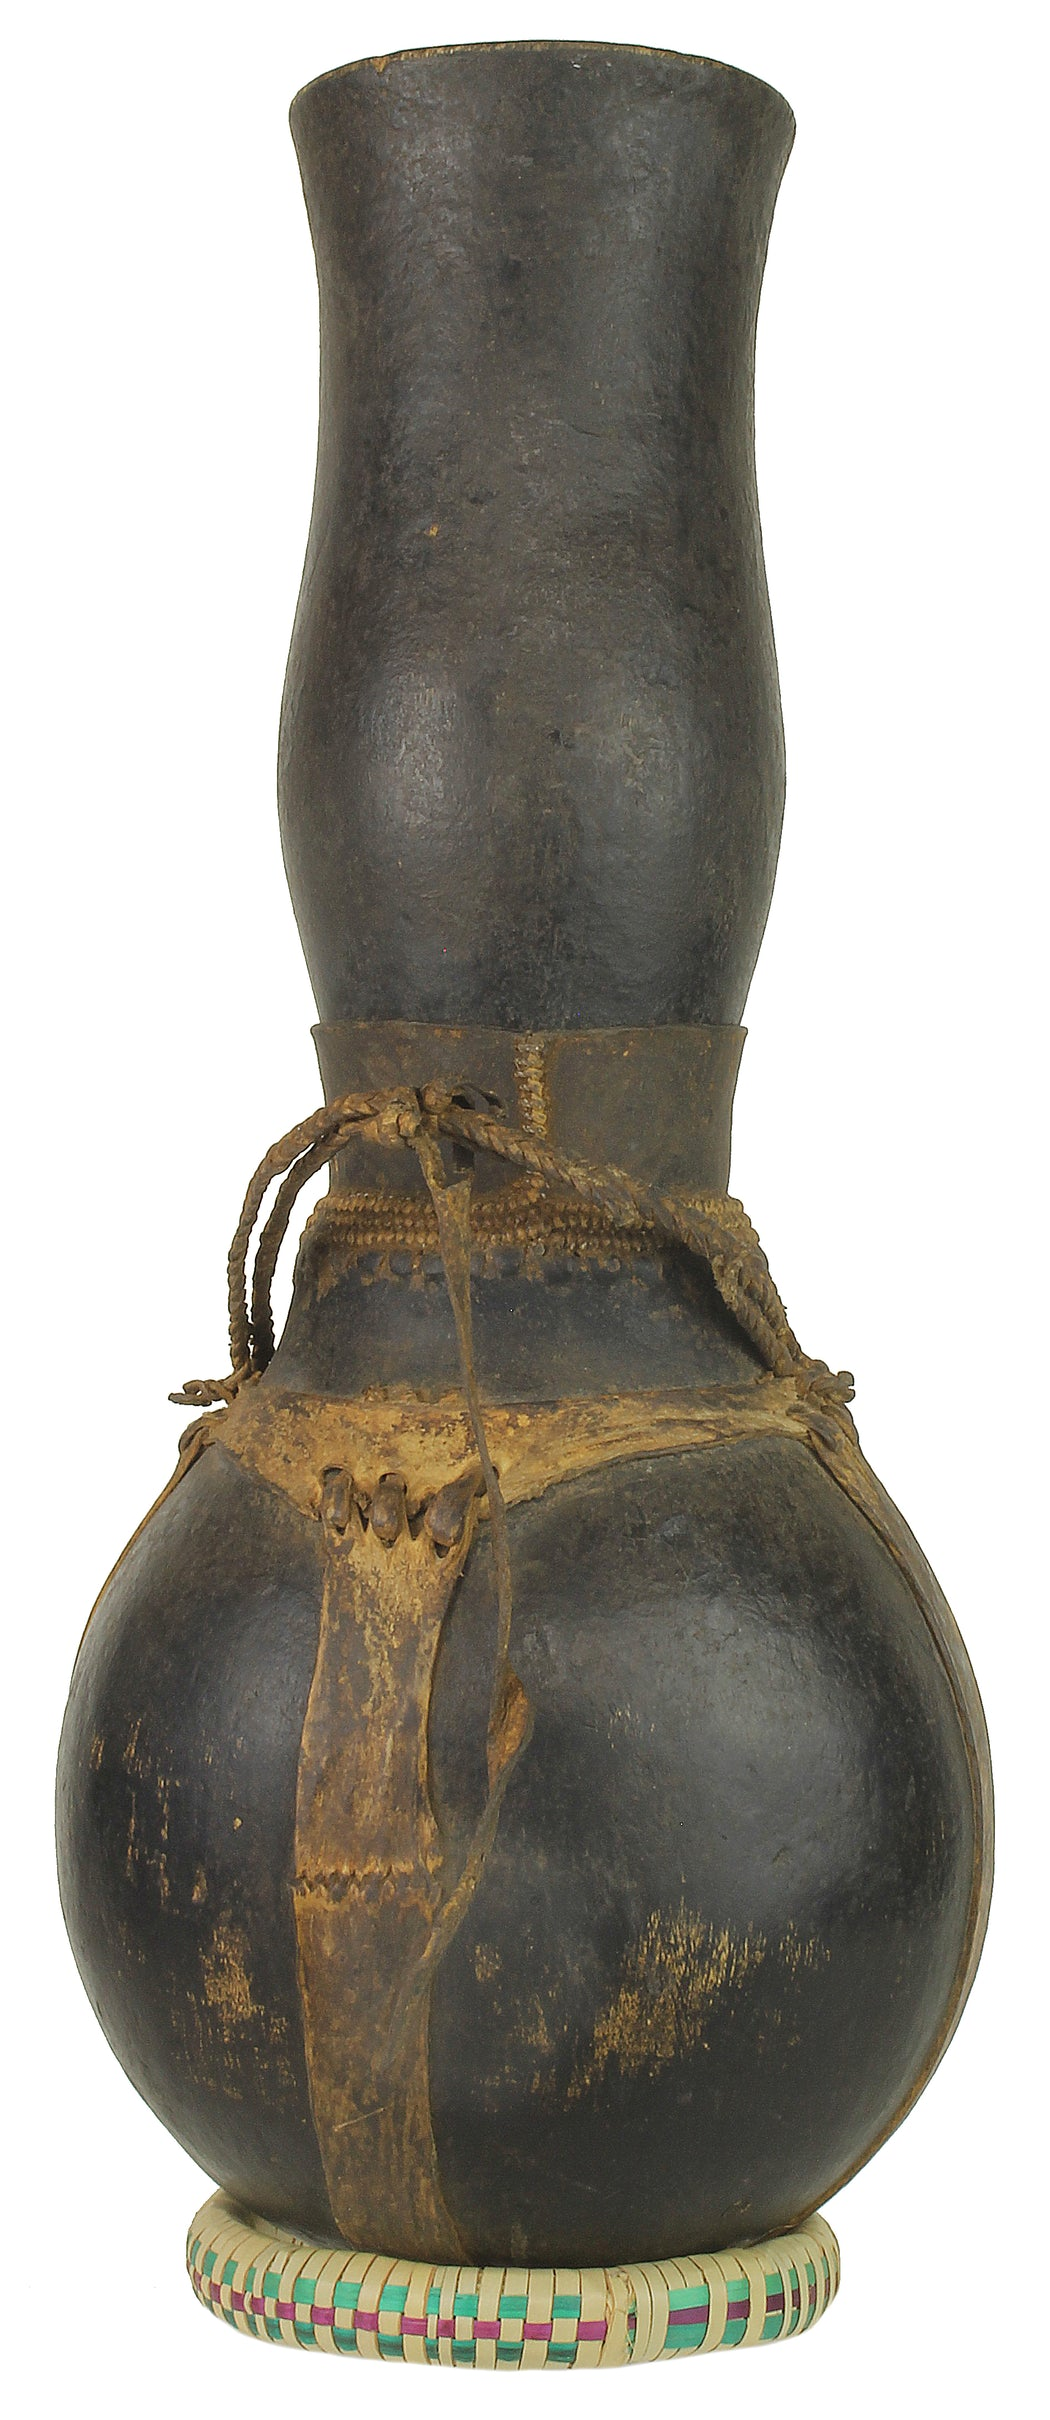 "Vintage Wooden & Leather Milk Vessel from Congo, Africa | 18.5"" - Niger Bend"